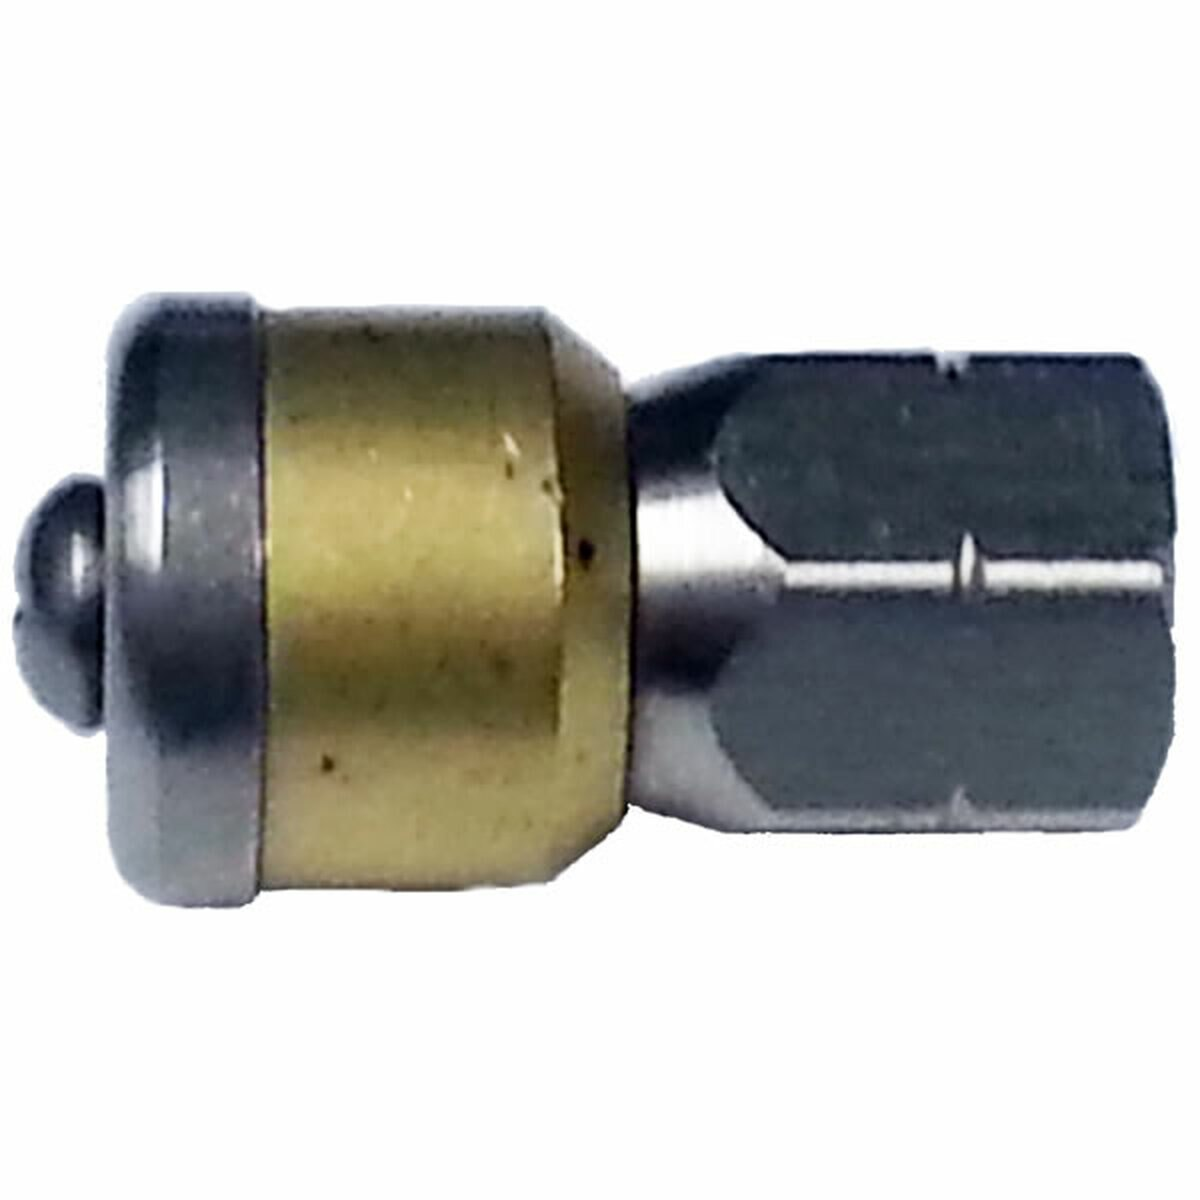 "MTM HYDRO 17.0020 ROTATING SEWER NOZZLE 3X.08MM - 045 1/8"" SS/BRASS"